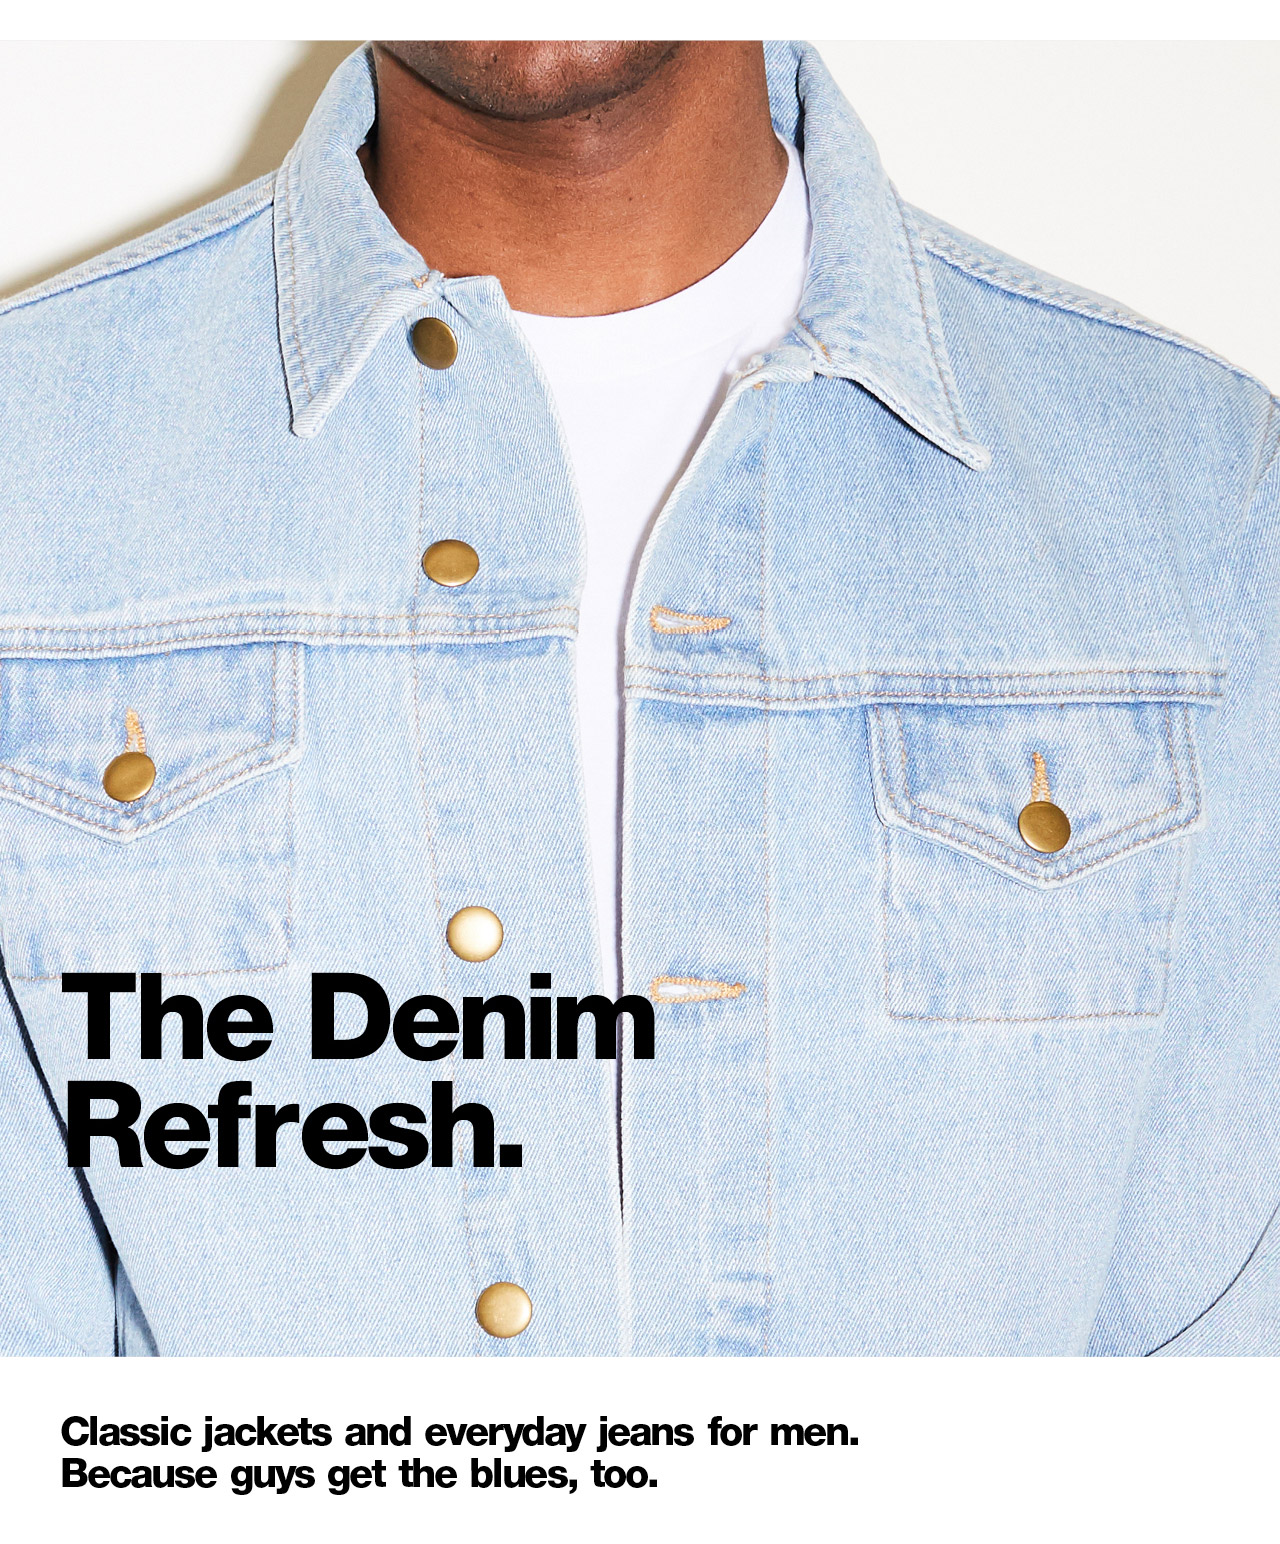 The Denim Refresh